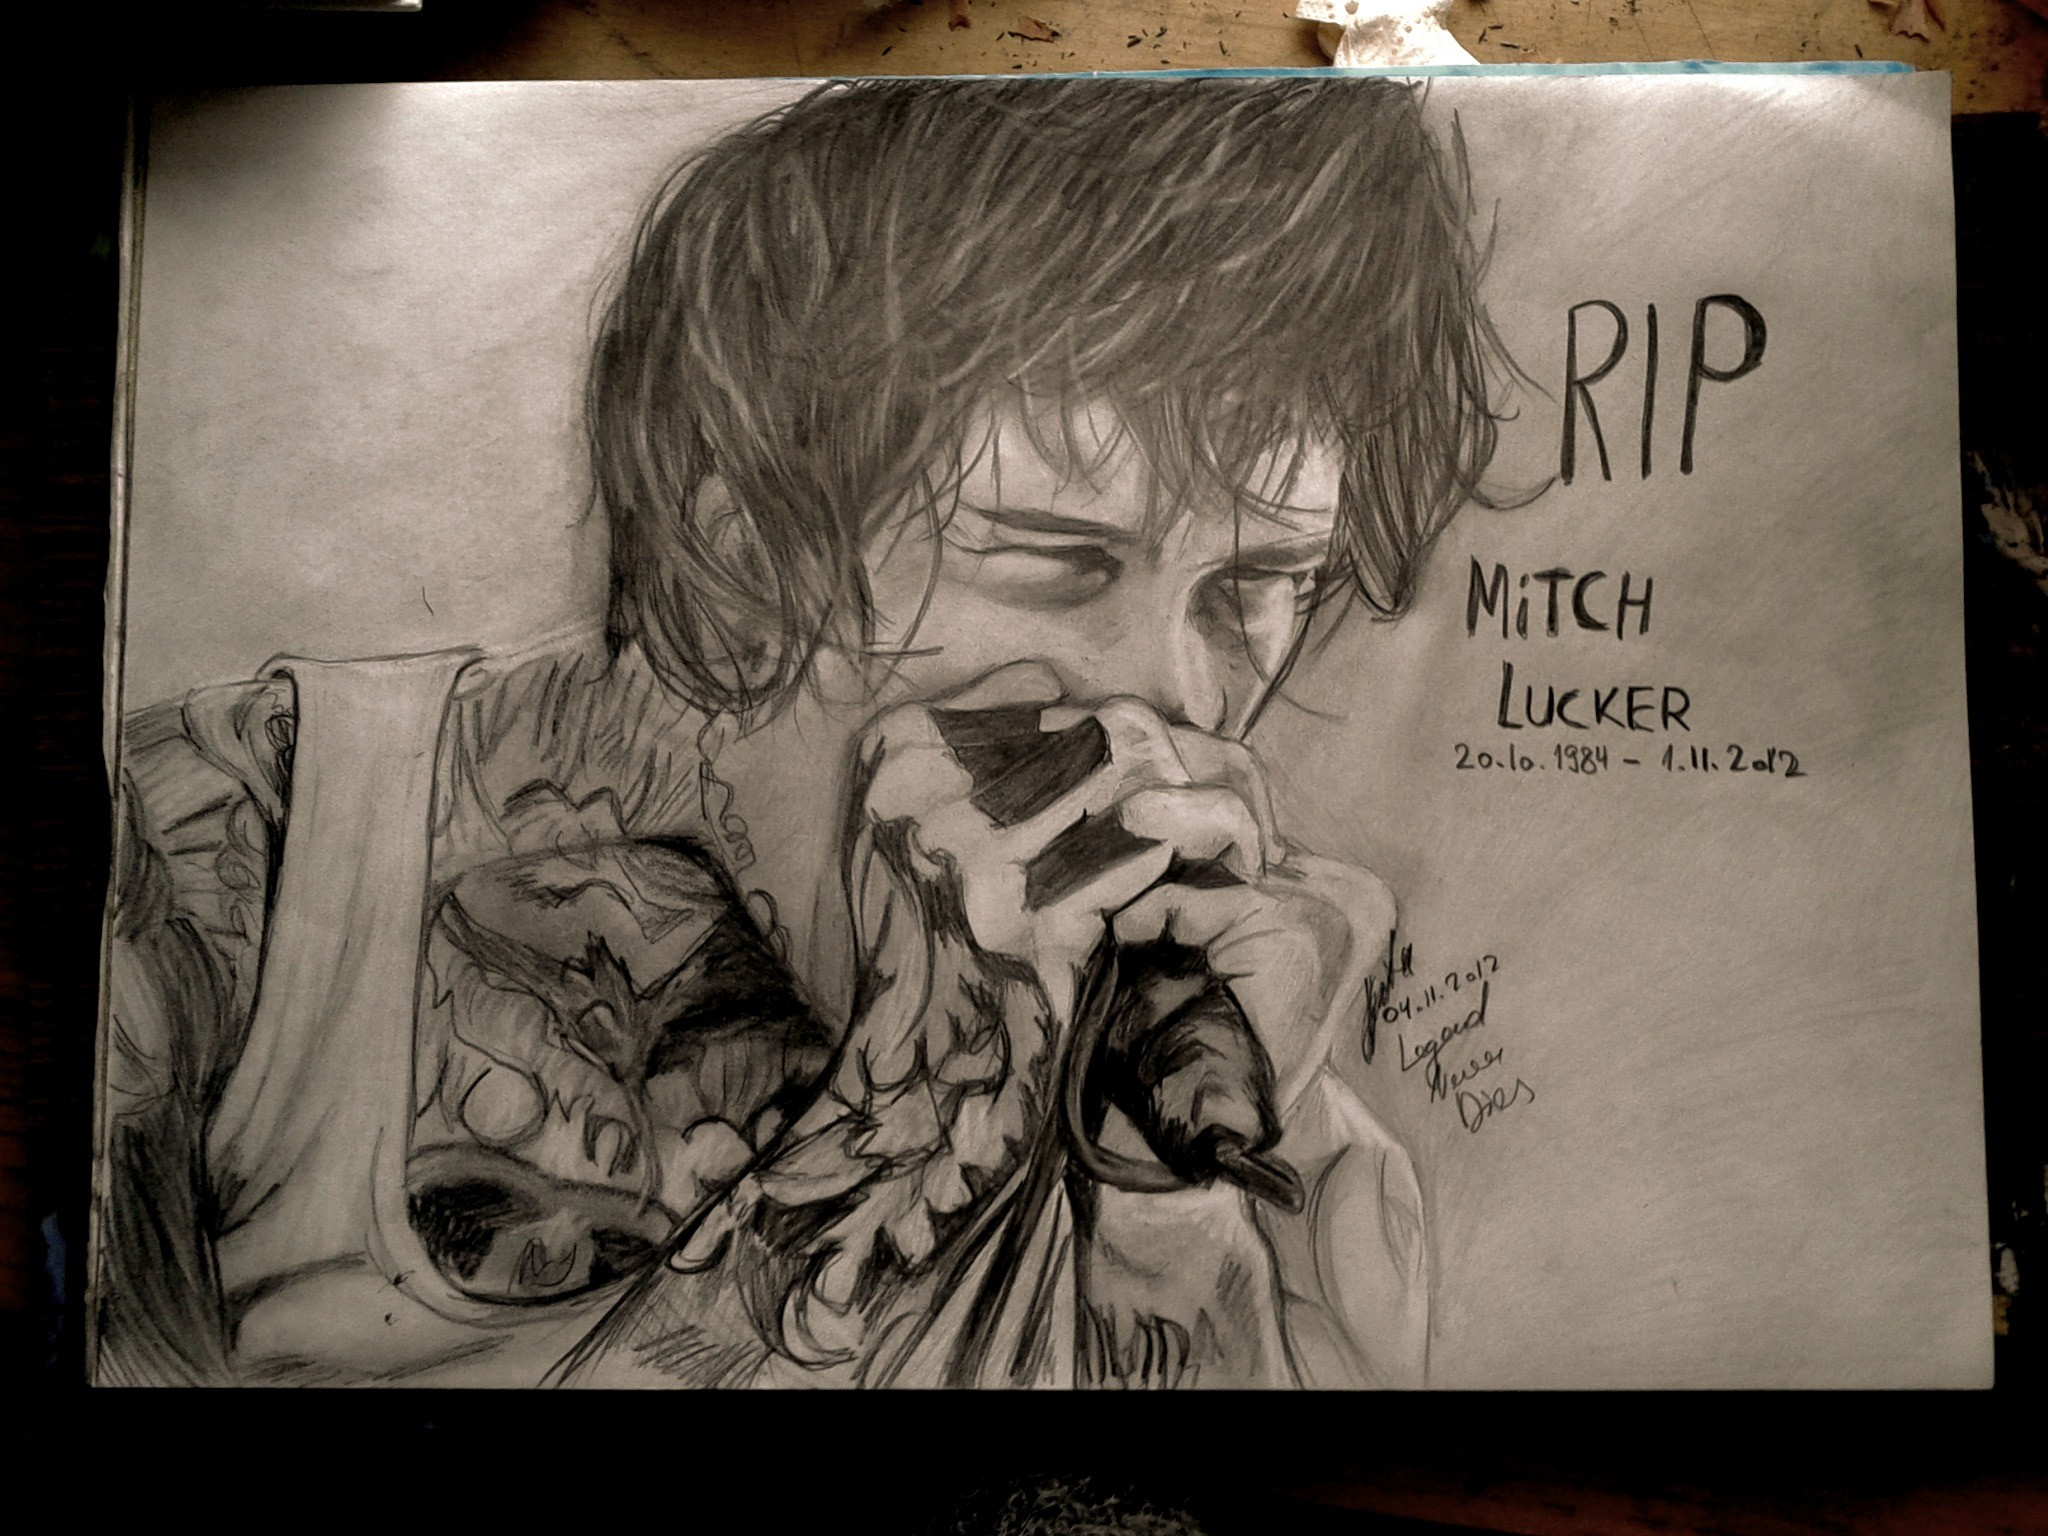 2048x1536 Mitch Lucker by fakeplasticDREAMdoll Mitch Lucker by fakeplasticDREAMdoll